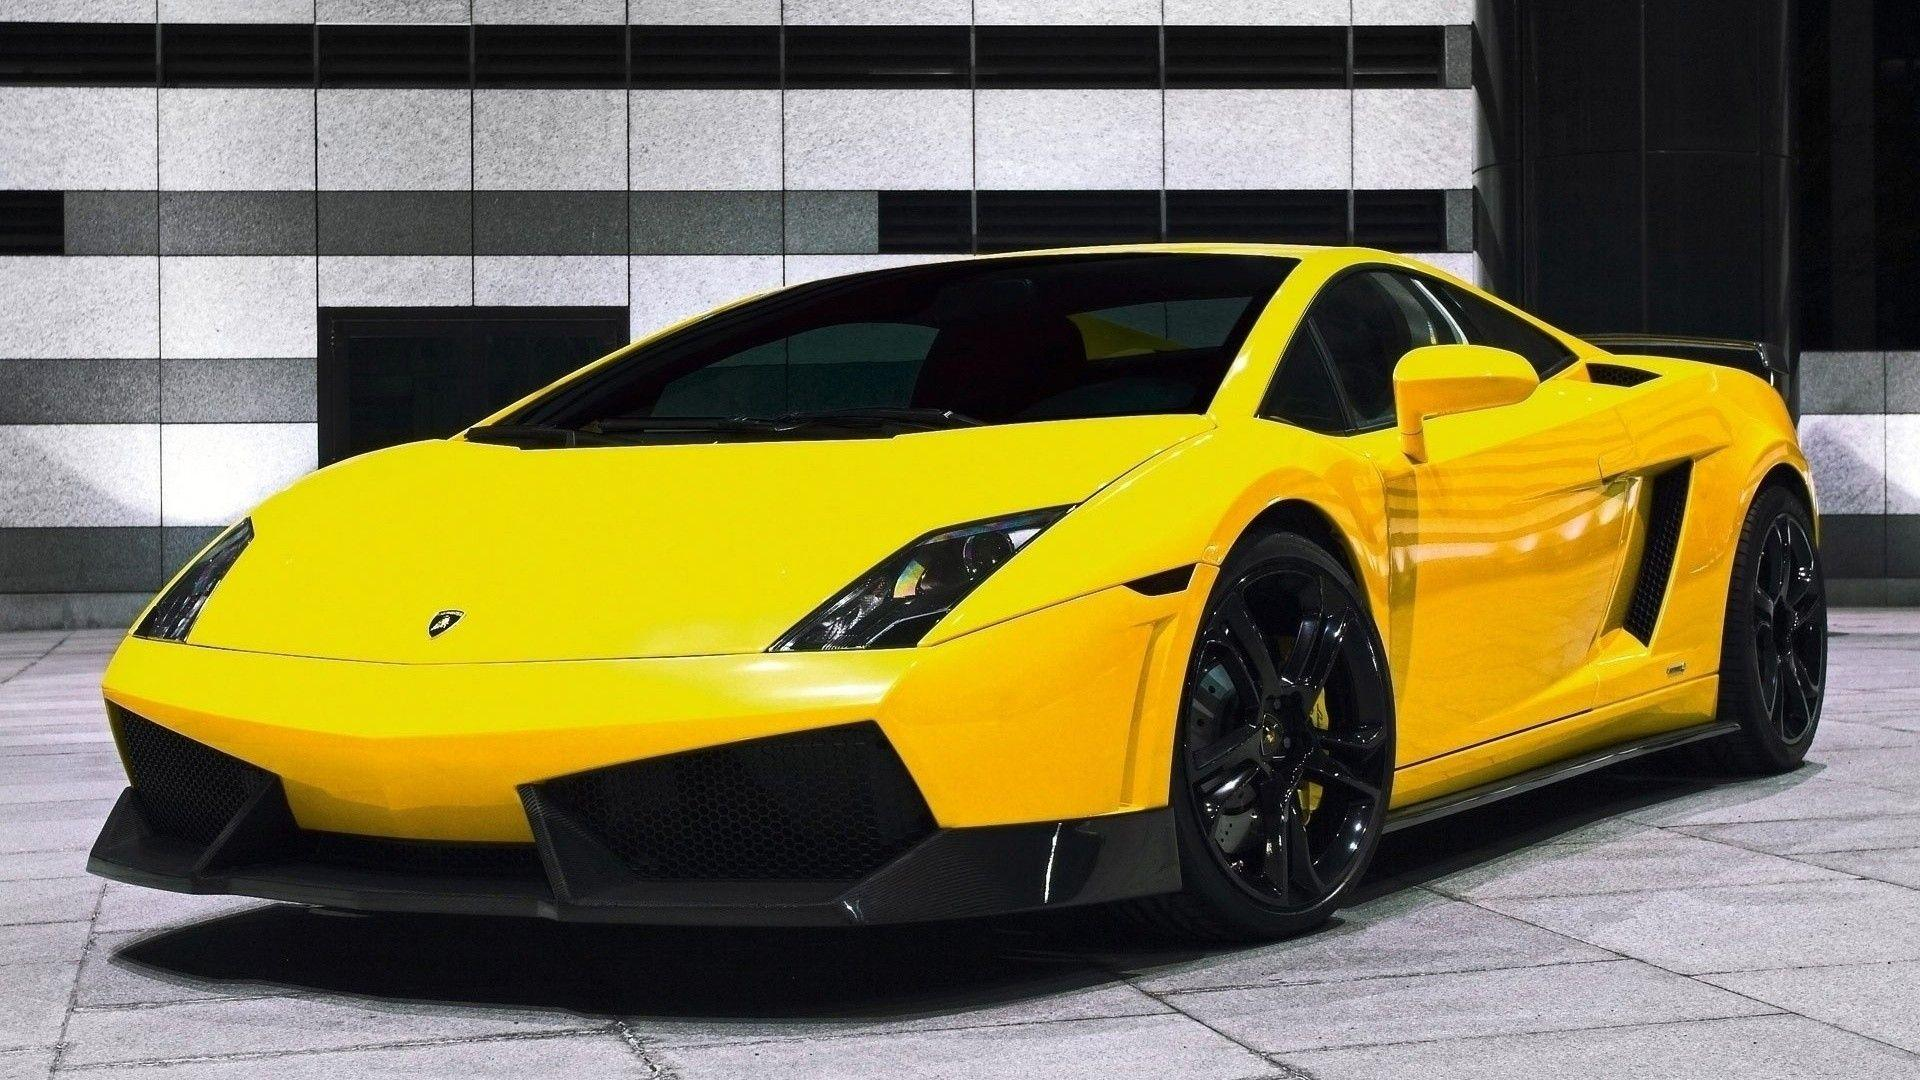 Yellow Lamborghini Murcielago Wallpapers Wallpaper Cave